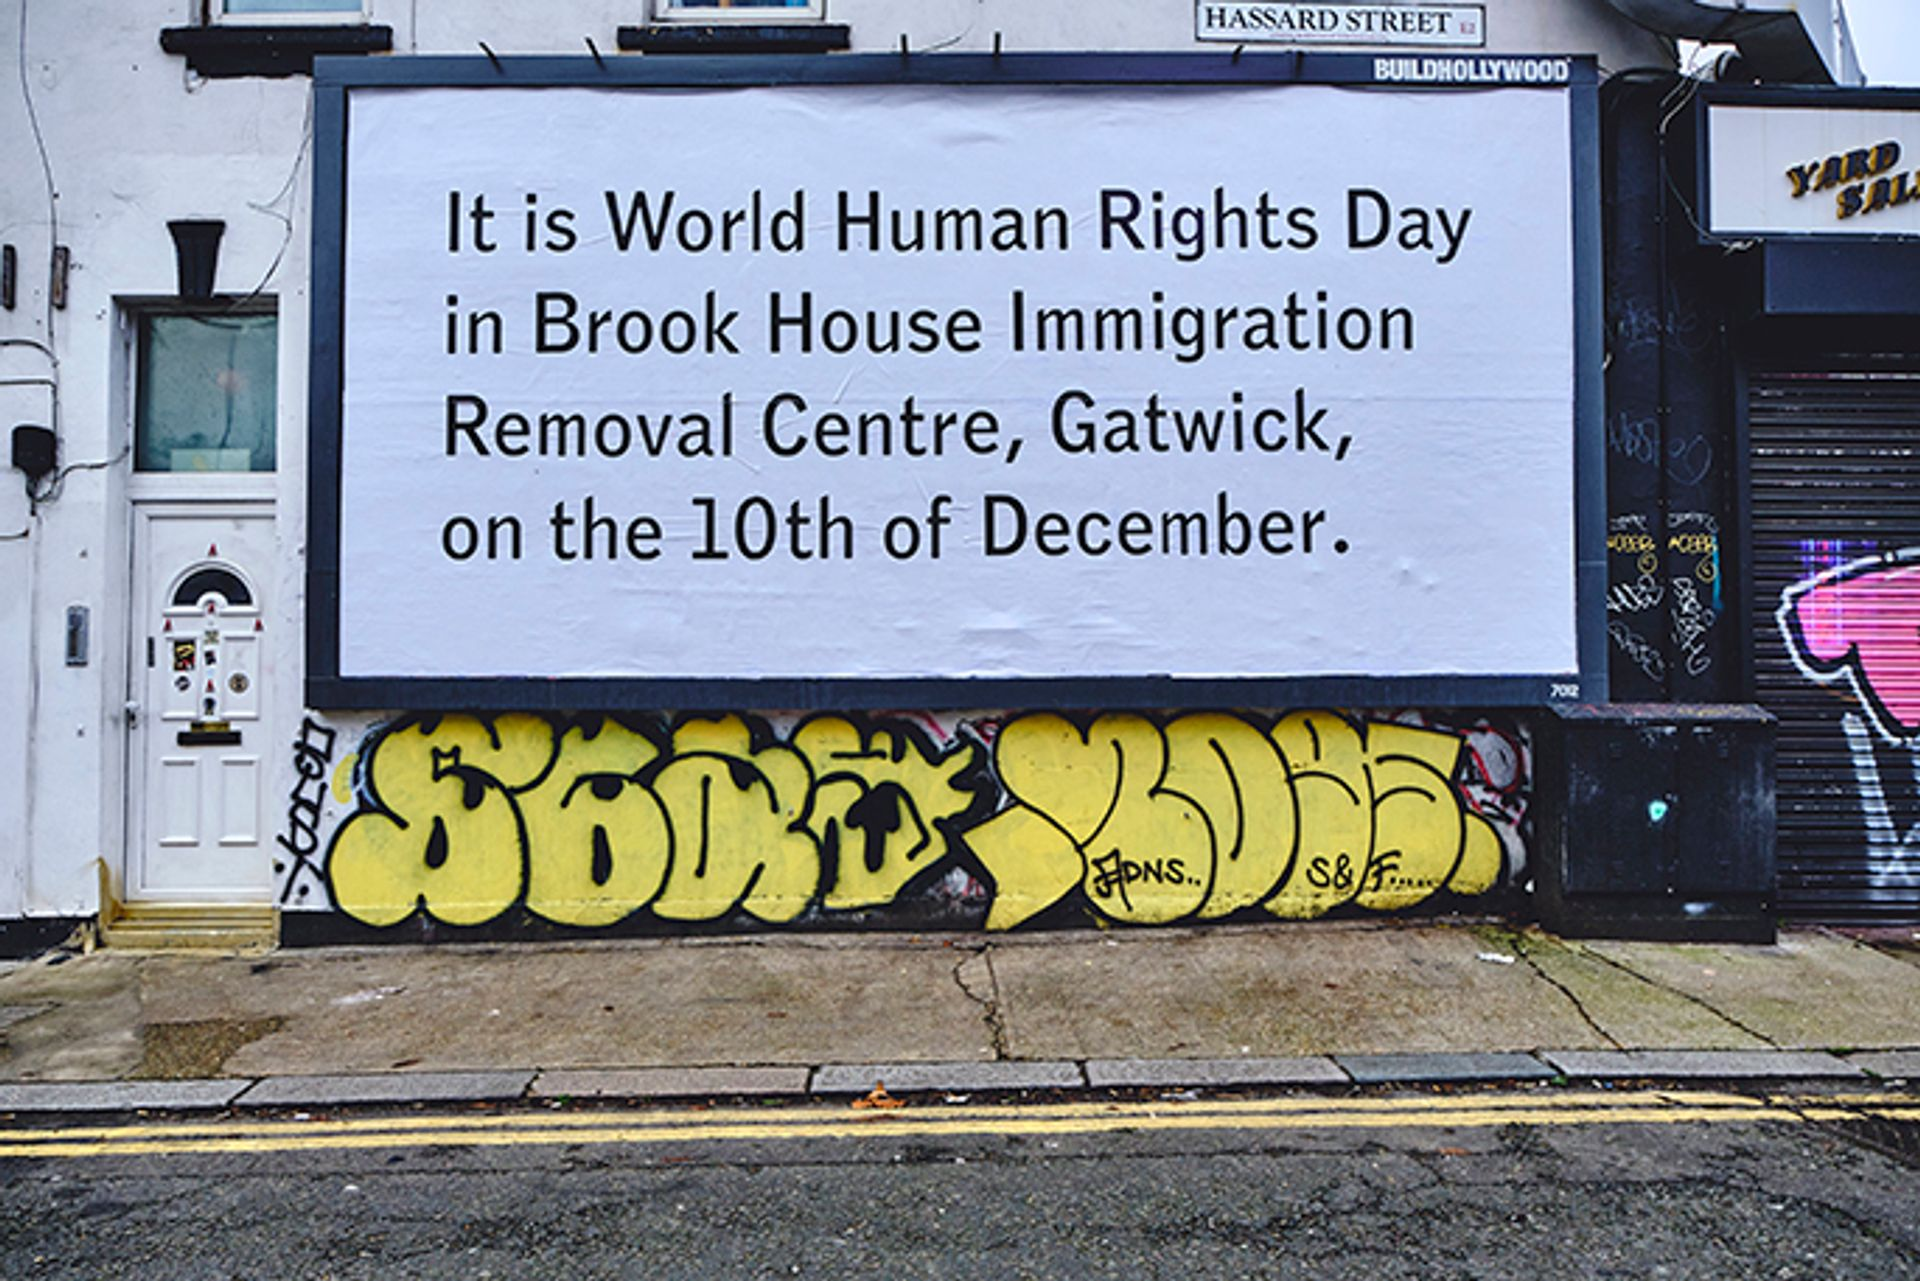 The artist Jeremy Deller has marked World Human Rights Day with a poster campaign © Buildhollywood